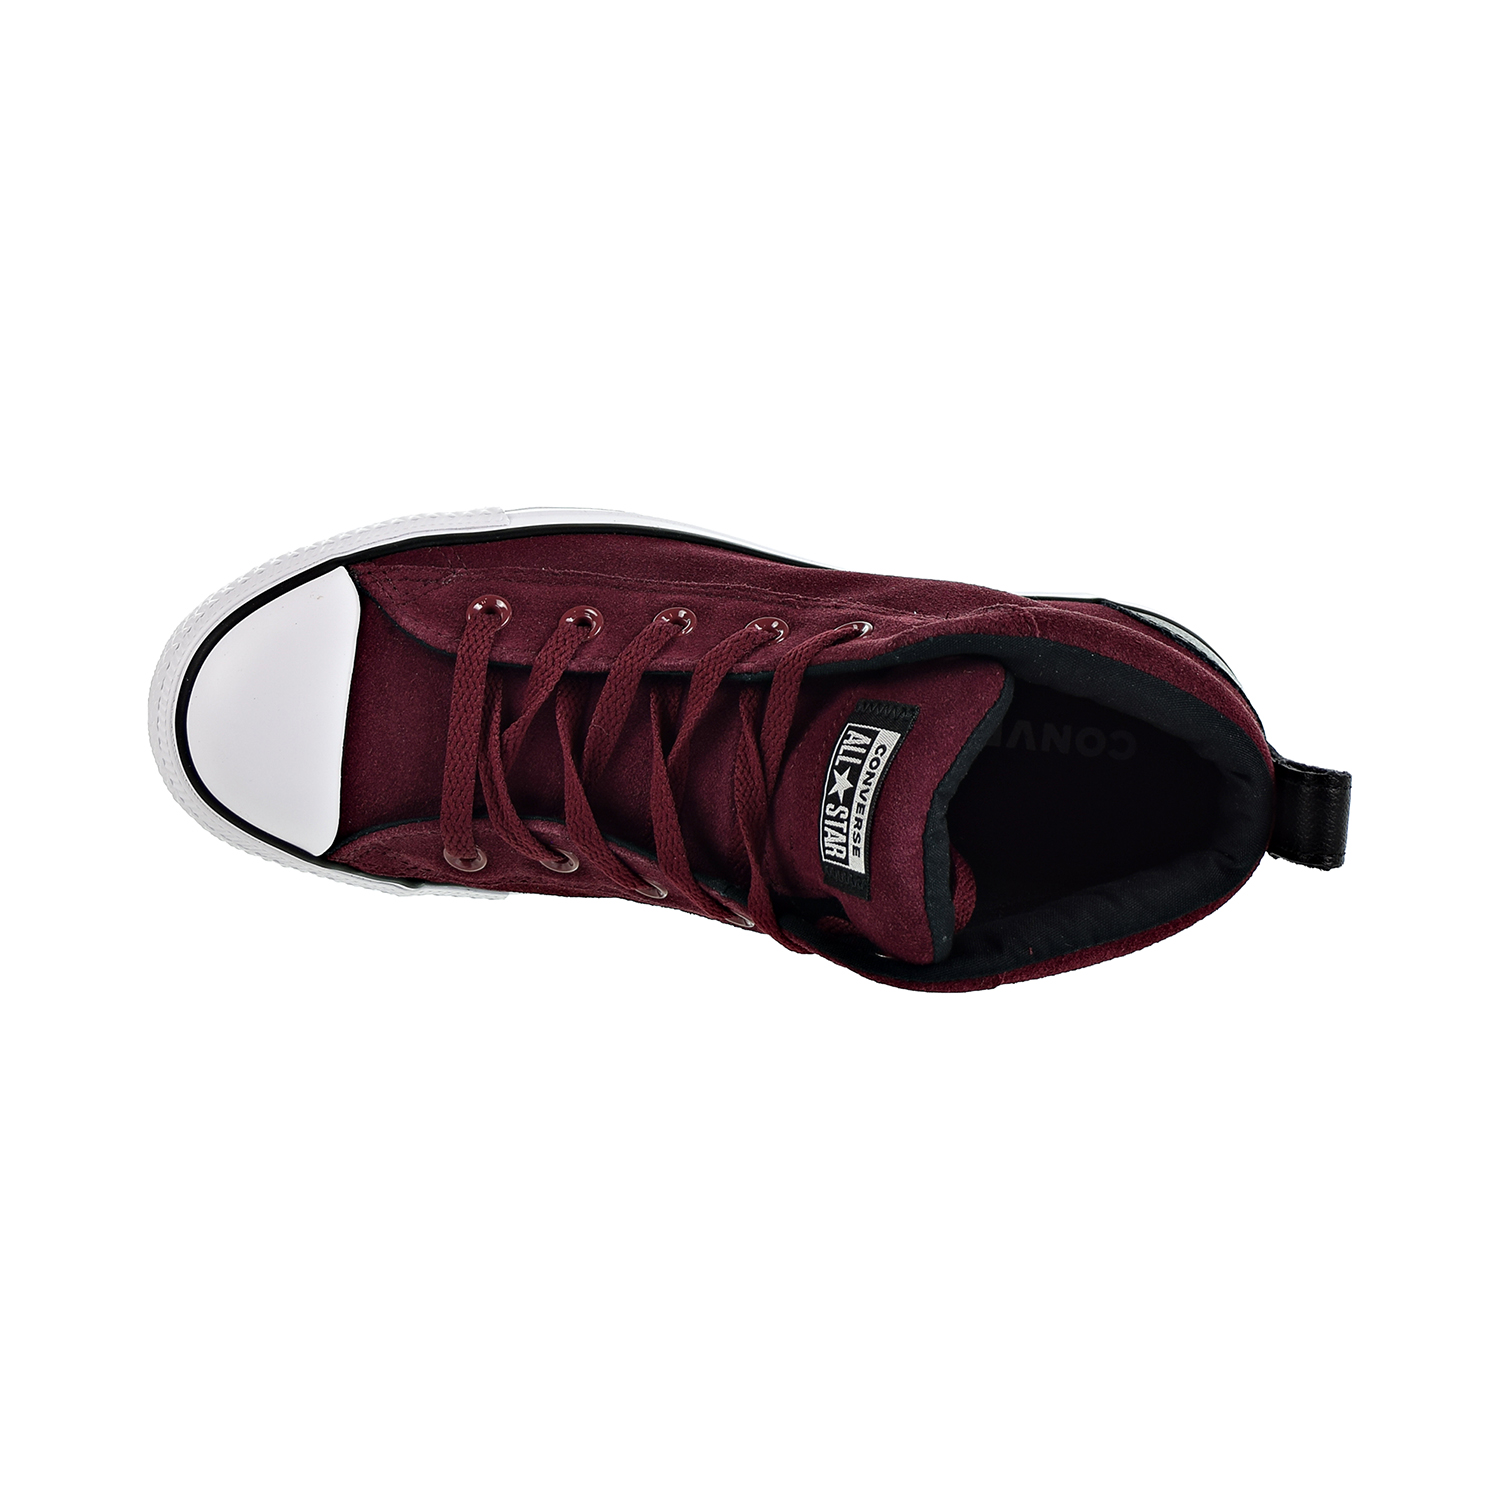 3822b1721995 Converse Chuck Taylor All Star Street Mid Unisex Shoes Dark Burgundy Black White  161467c